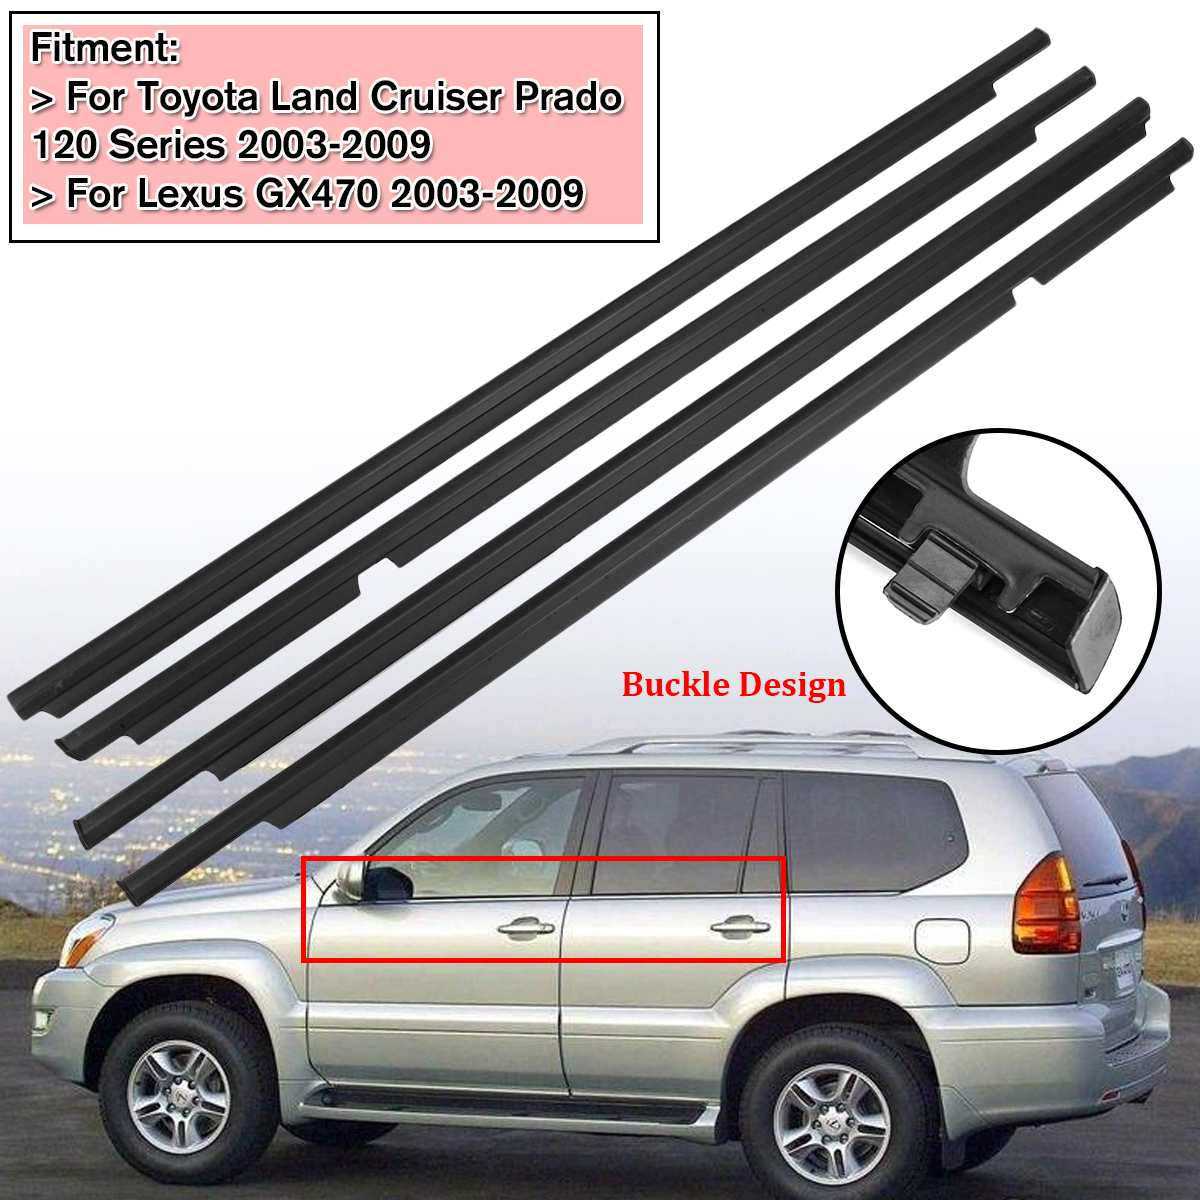 Weather-Strips Seal Door-Belts Land-Cruiser 2003-2009 Lexus Gx470 Toyota 120 Prado NEW title=